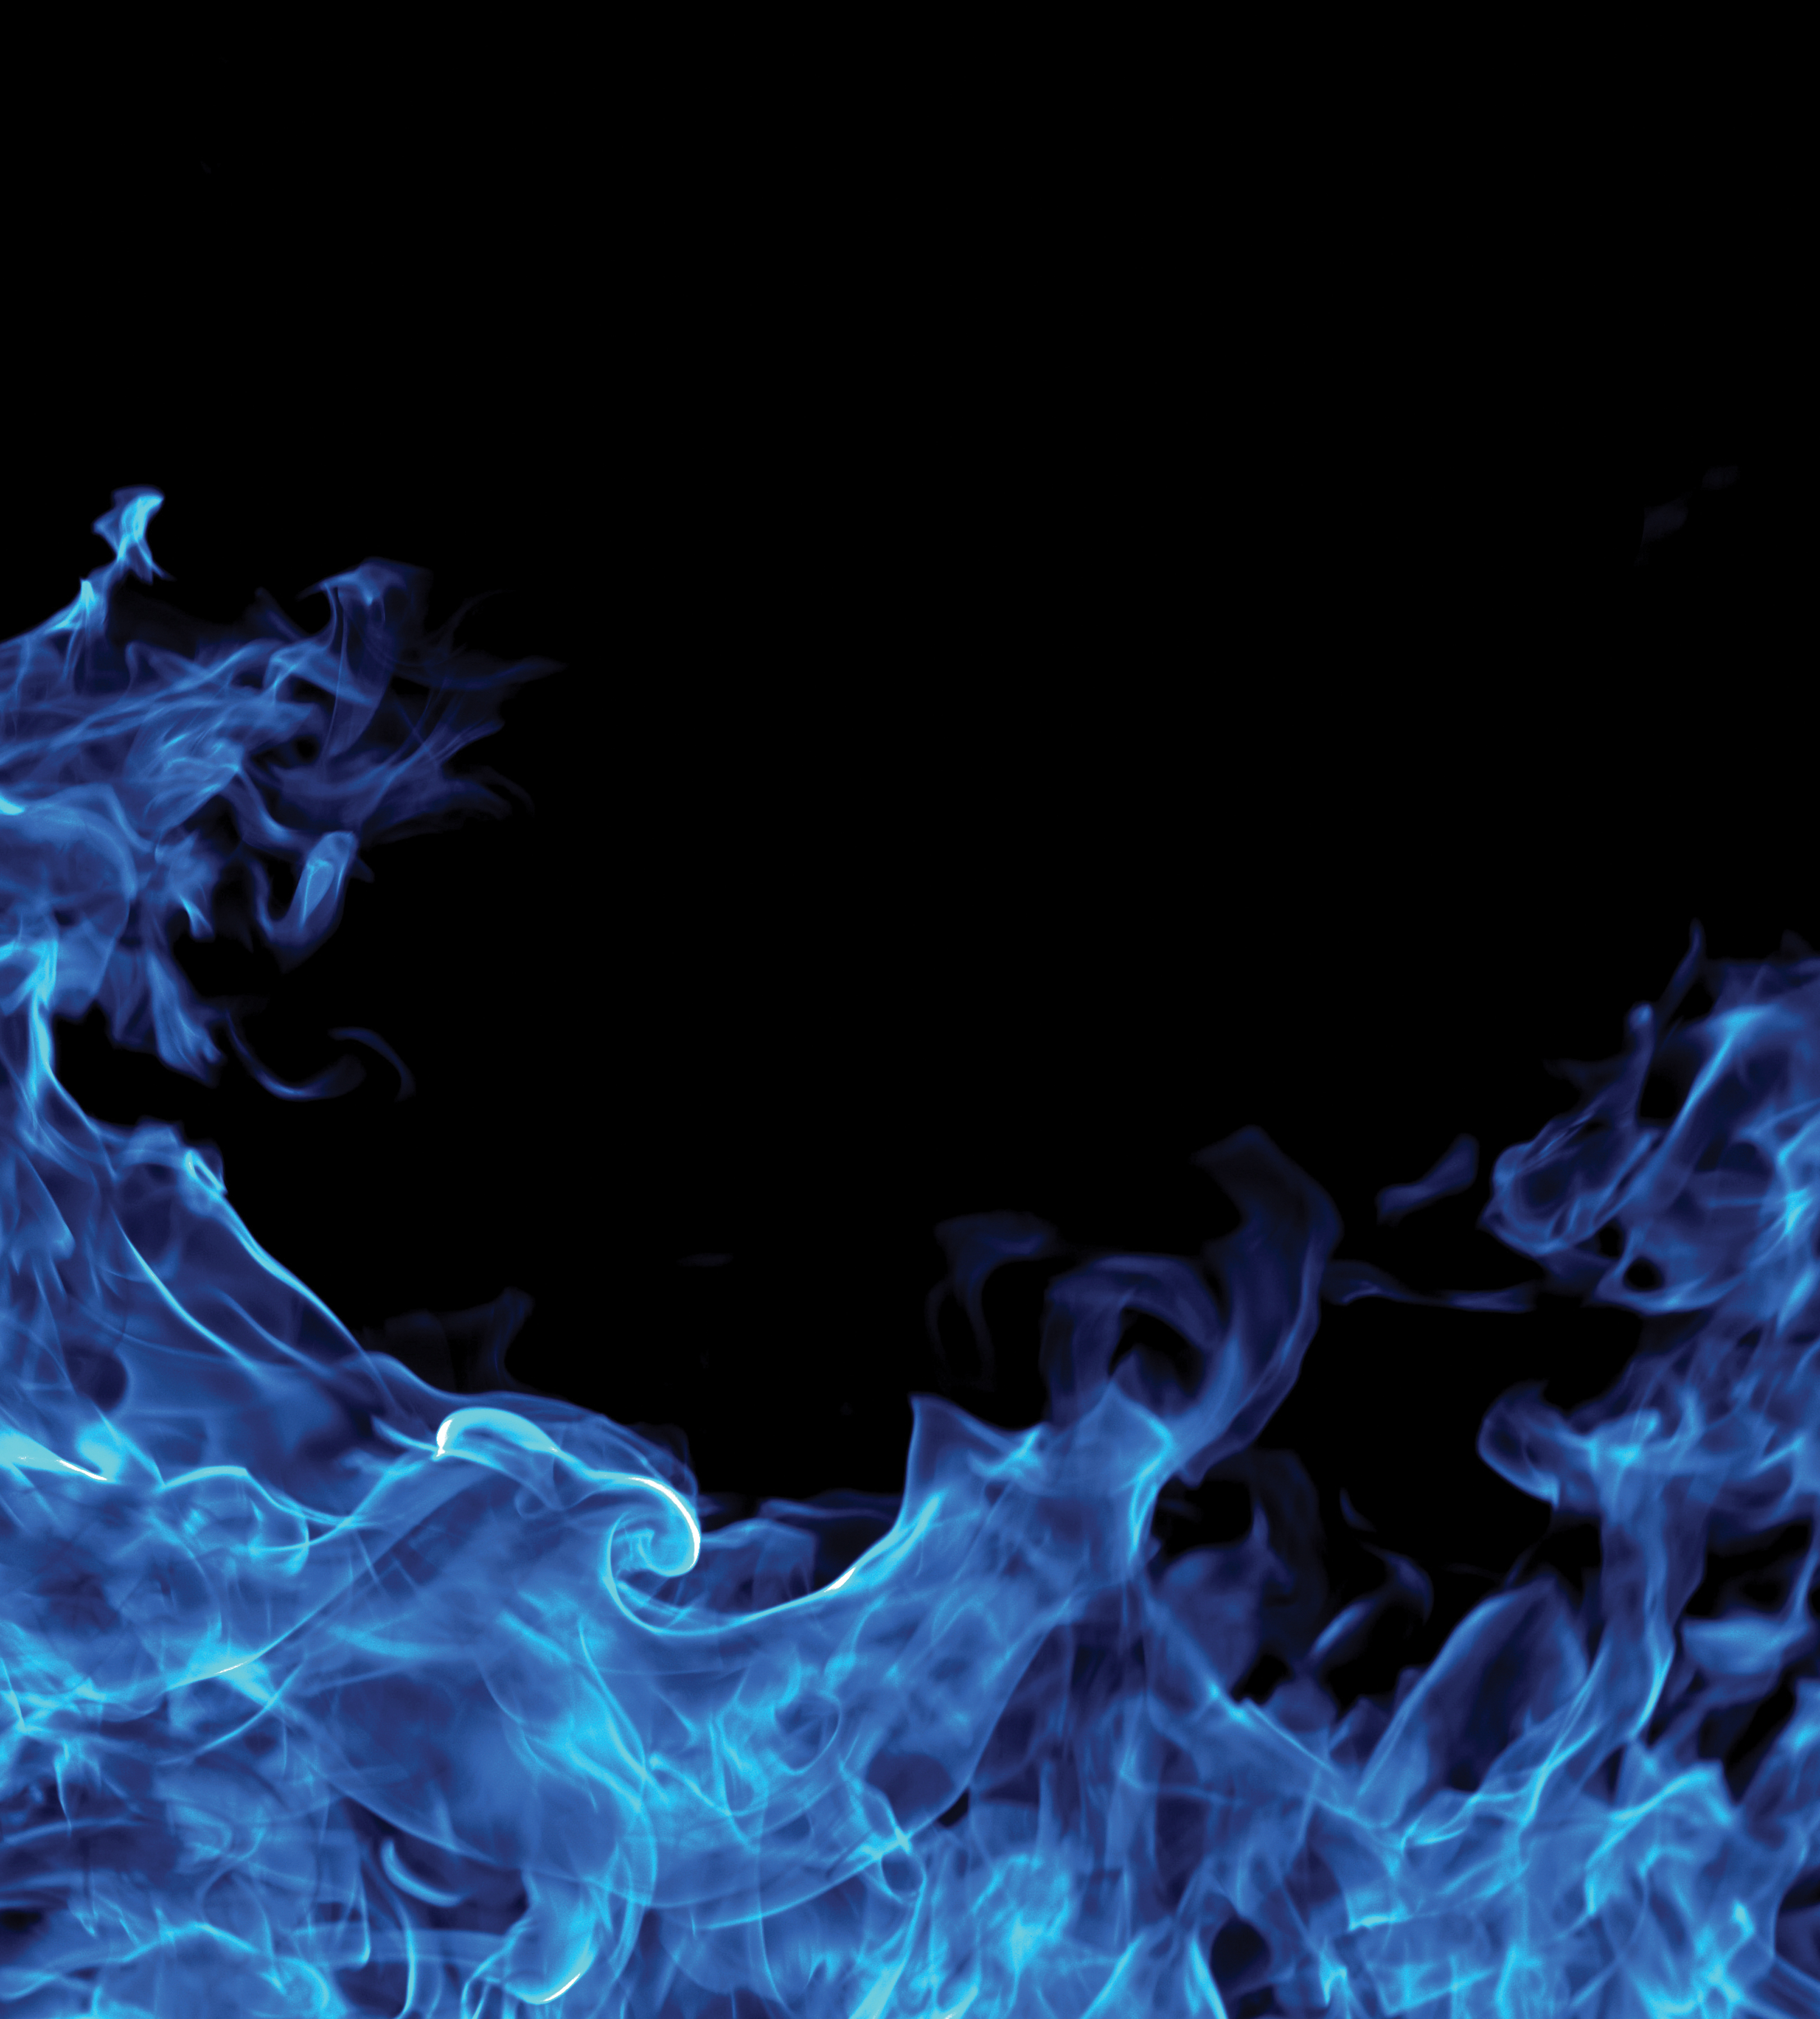 Blue Flames Background image #34518